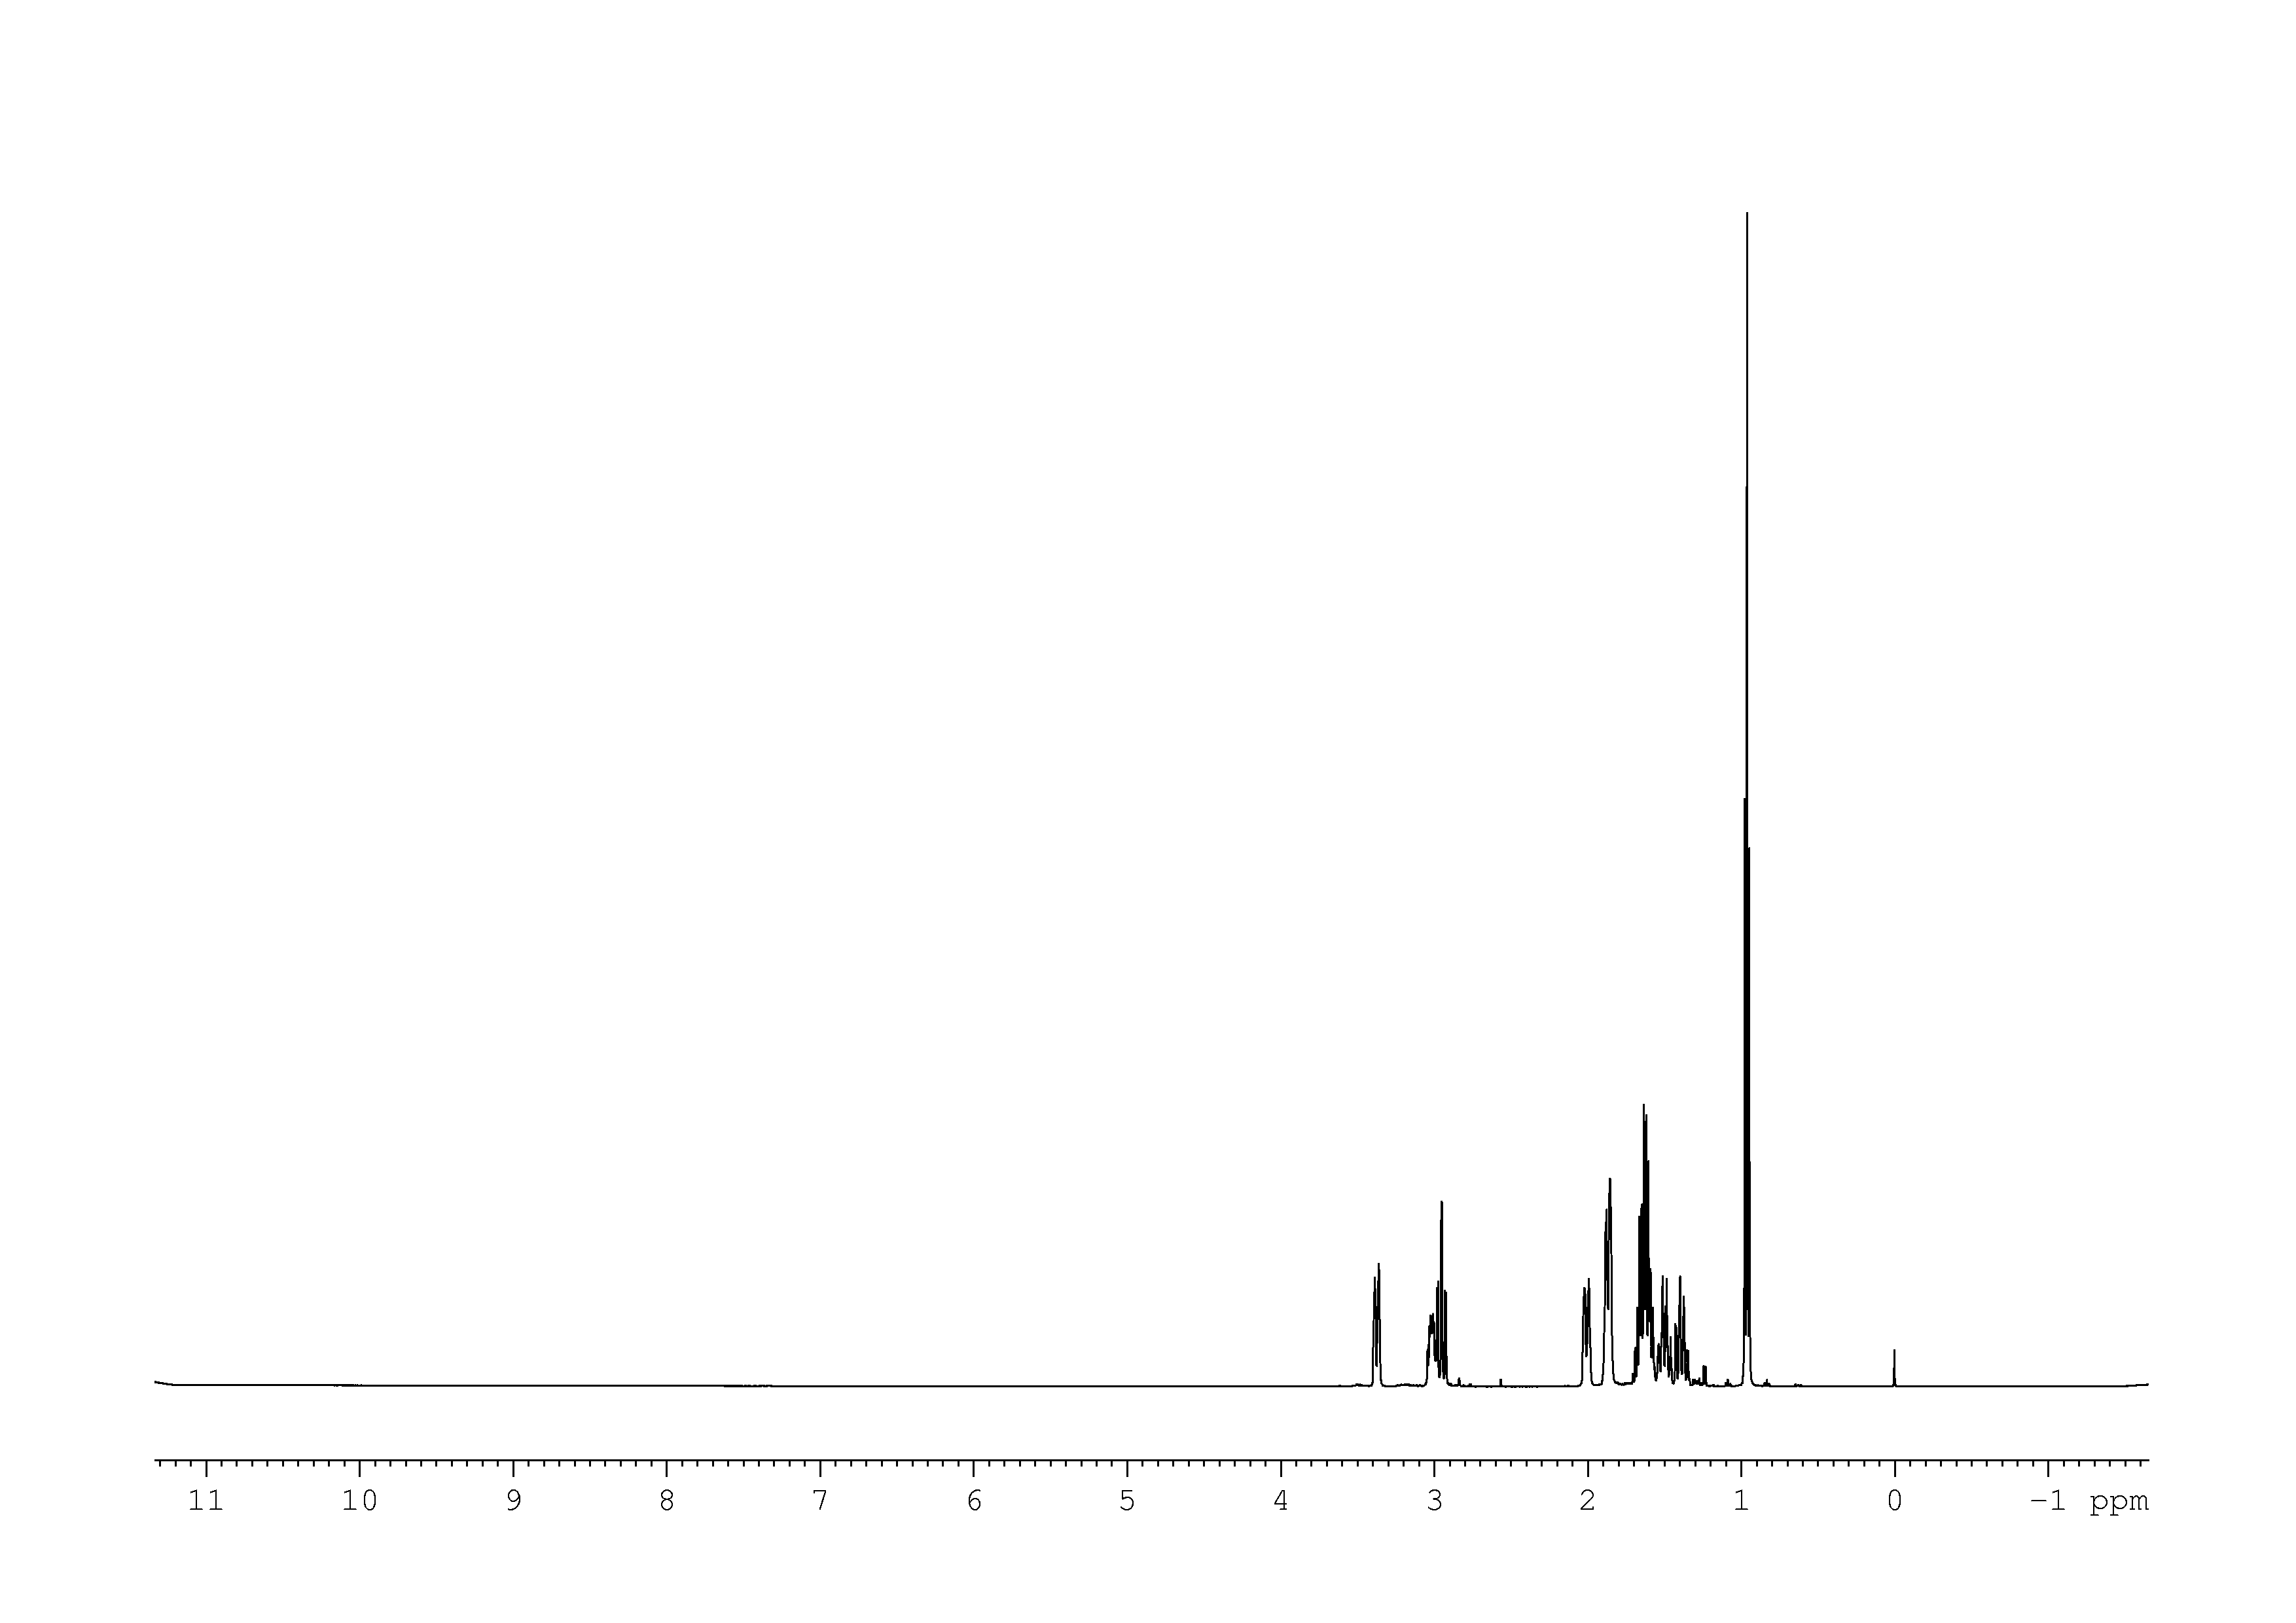 1D 1H, 7.4 spectrum for 2-ethylpiperidine